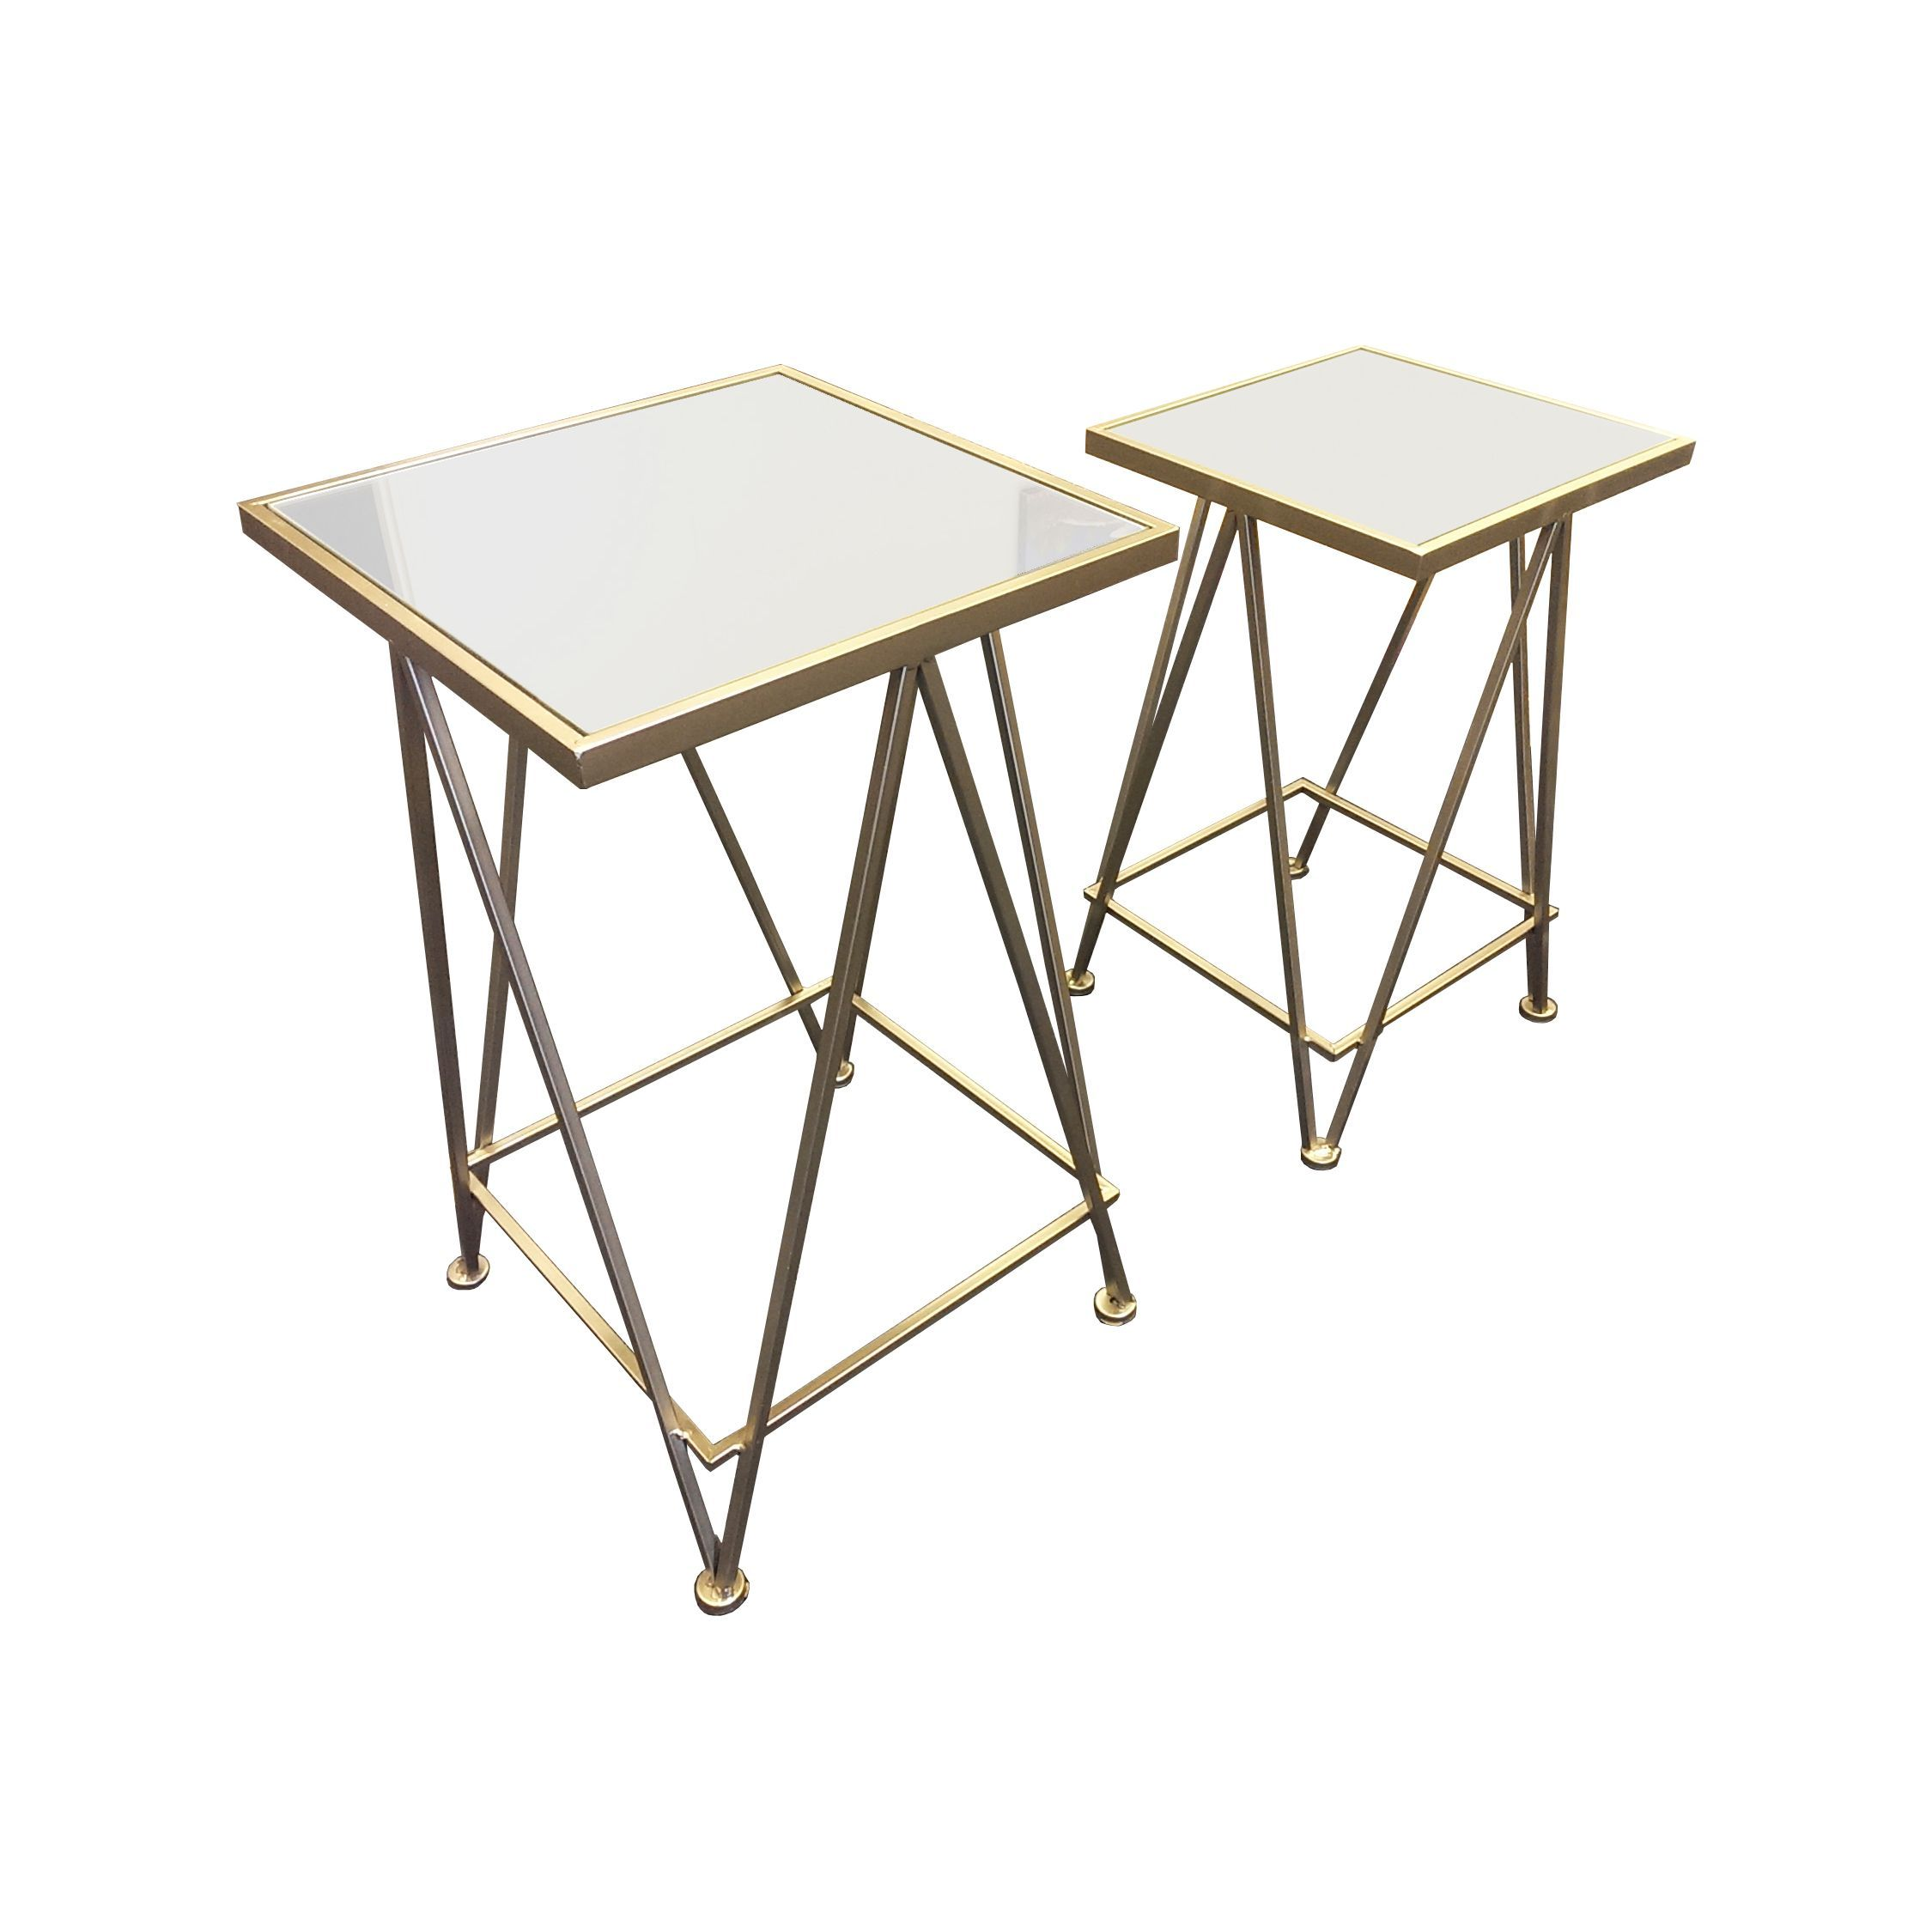 bring home this fascinating metal mirror accent table that will great addition your room space made quality materials with drawer and shelf pub style kitchen french braid quilt